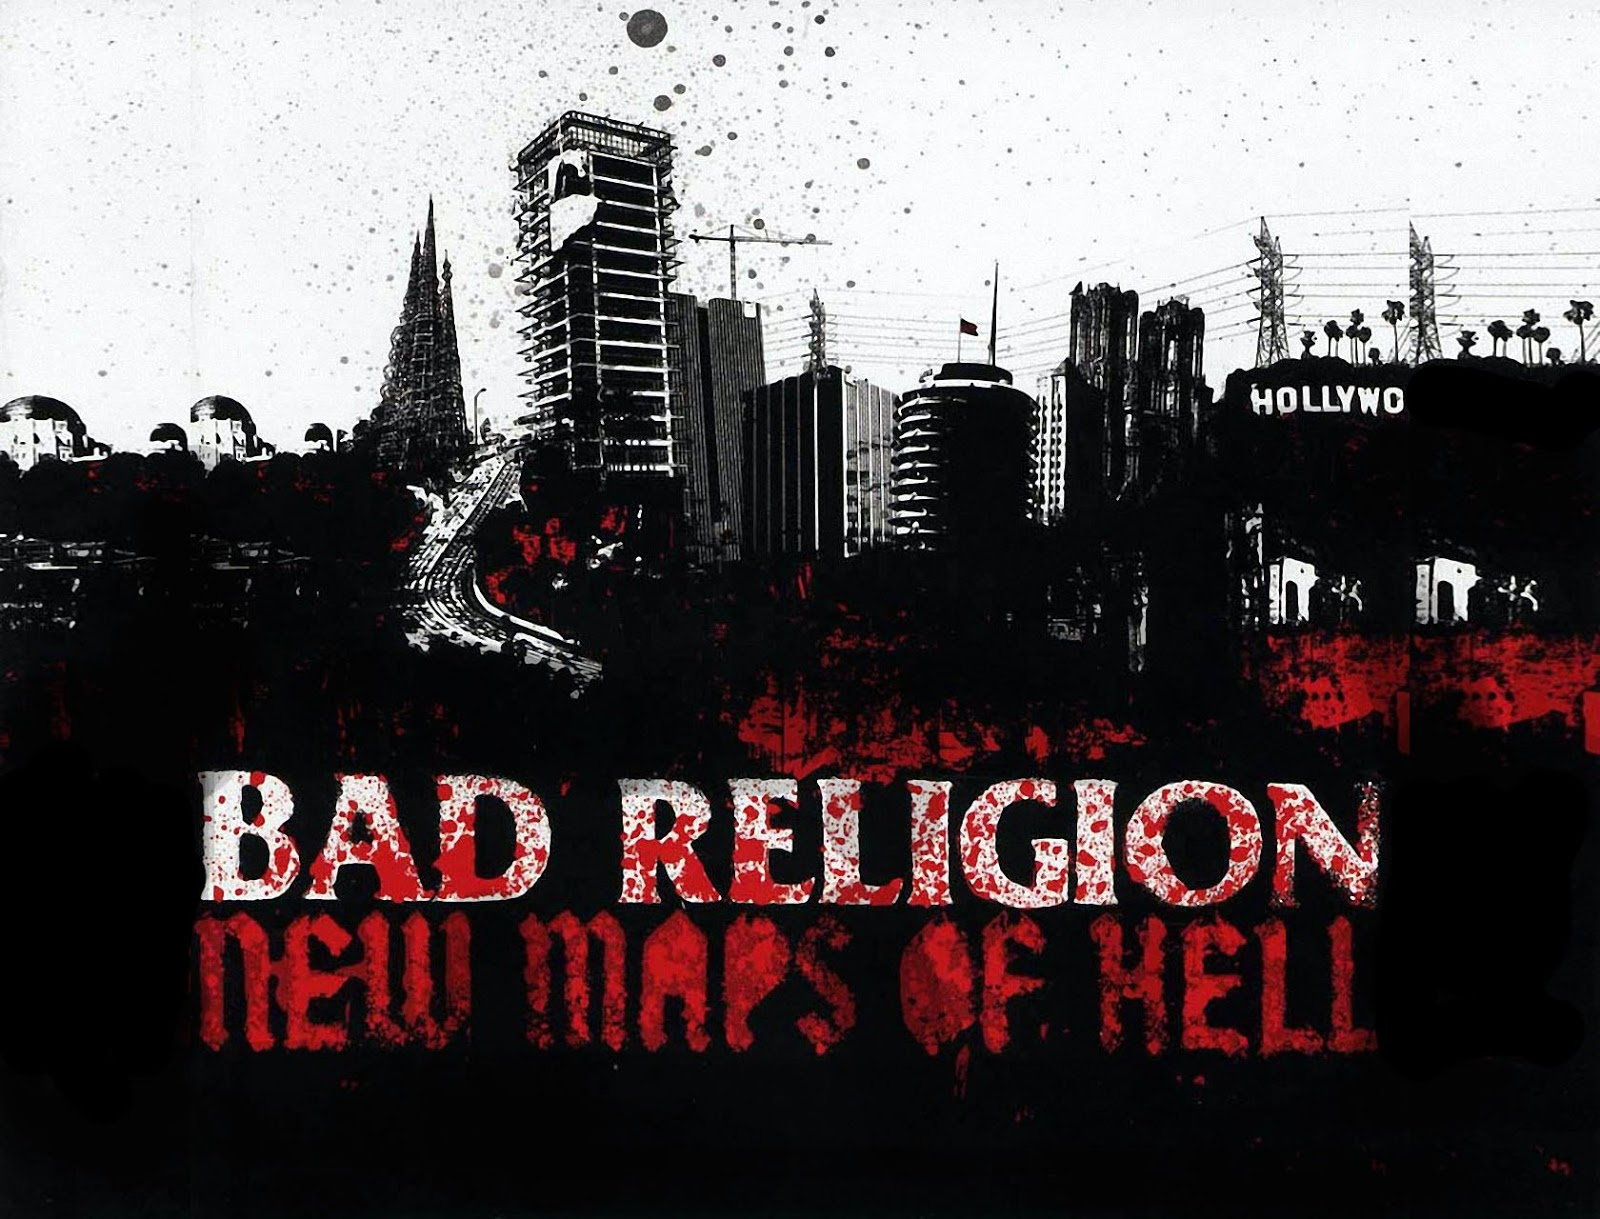 bad religion wallpaper iphone: Metalpaper: Bad Religion Wallpapers